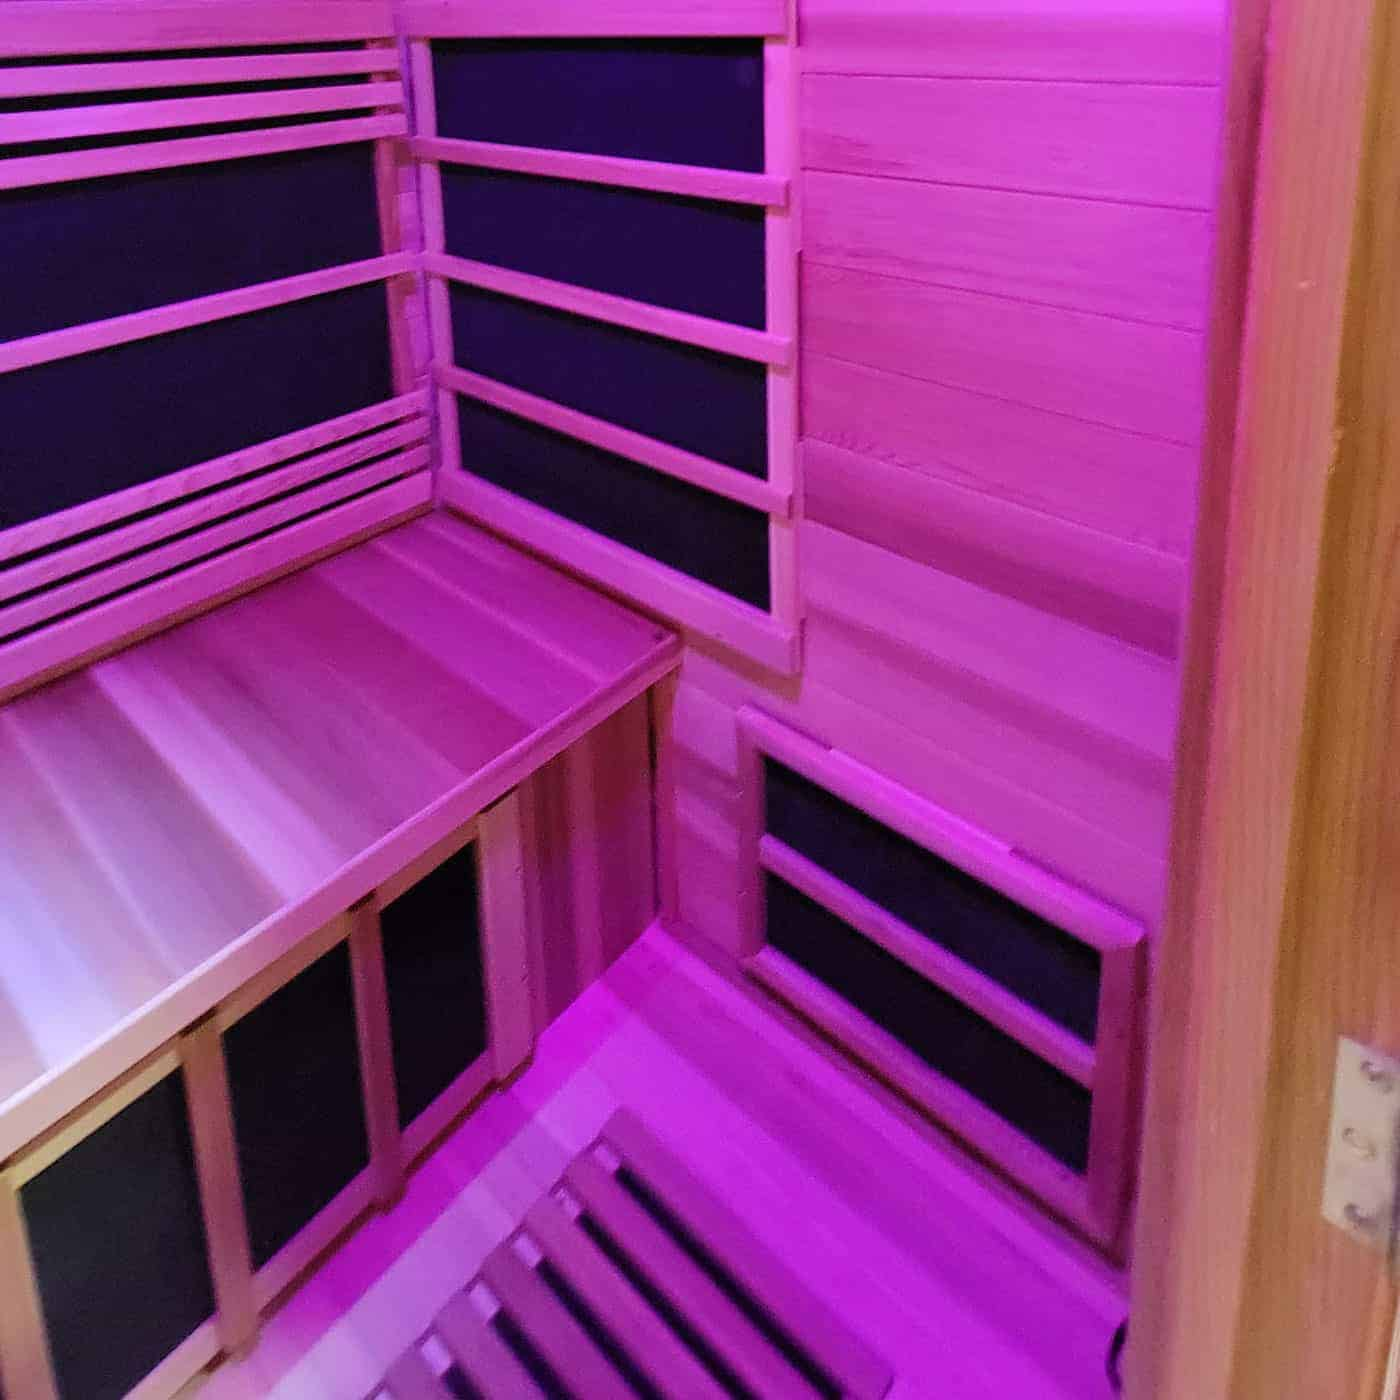 Outdoor Infrared Sauna Interior View with Chromatherapy